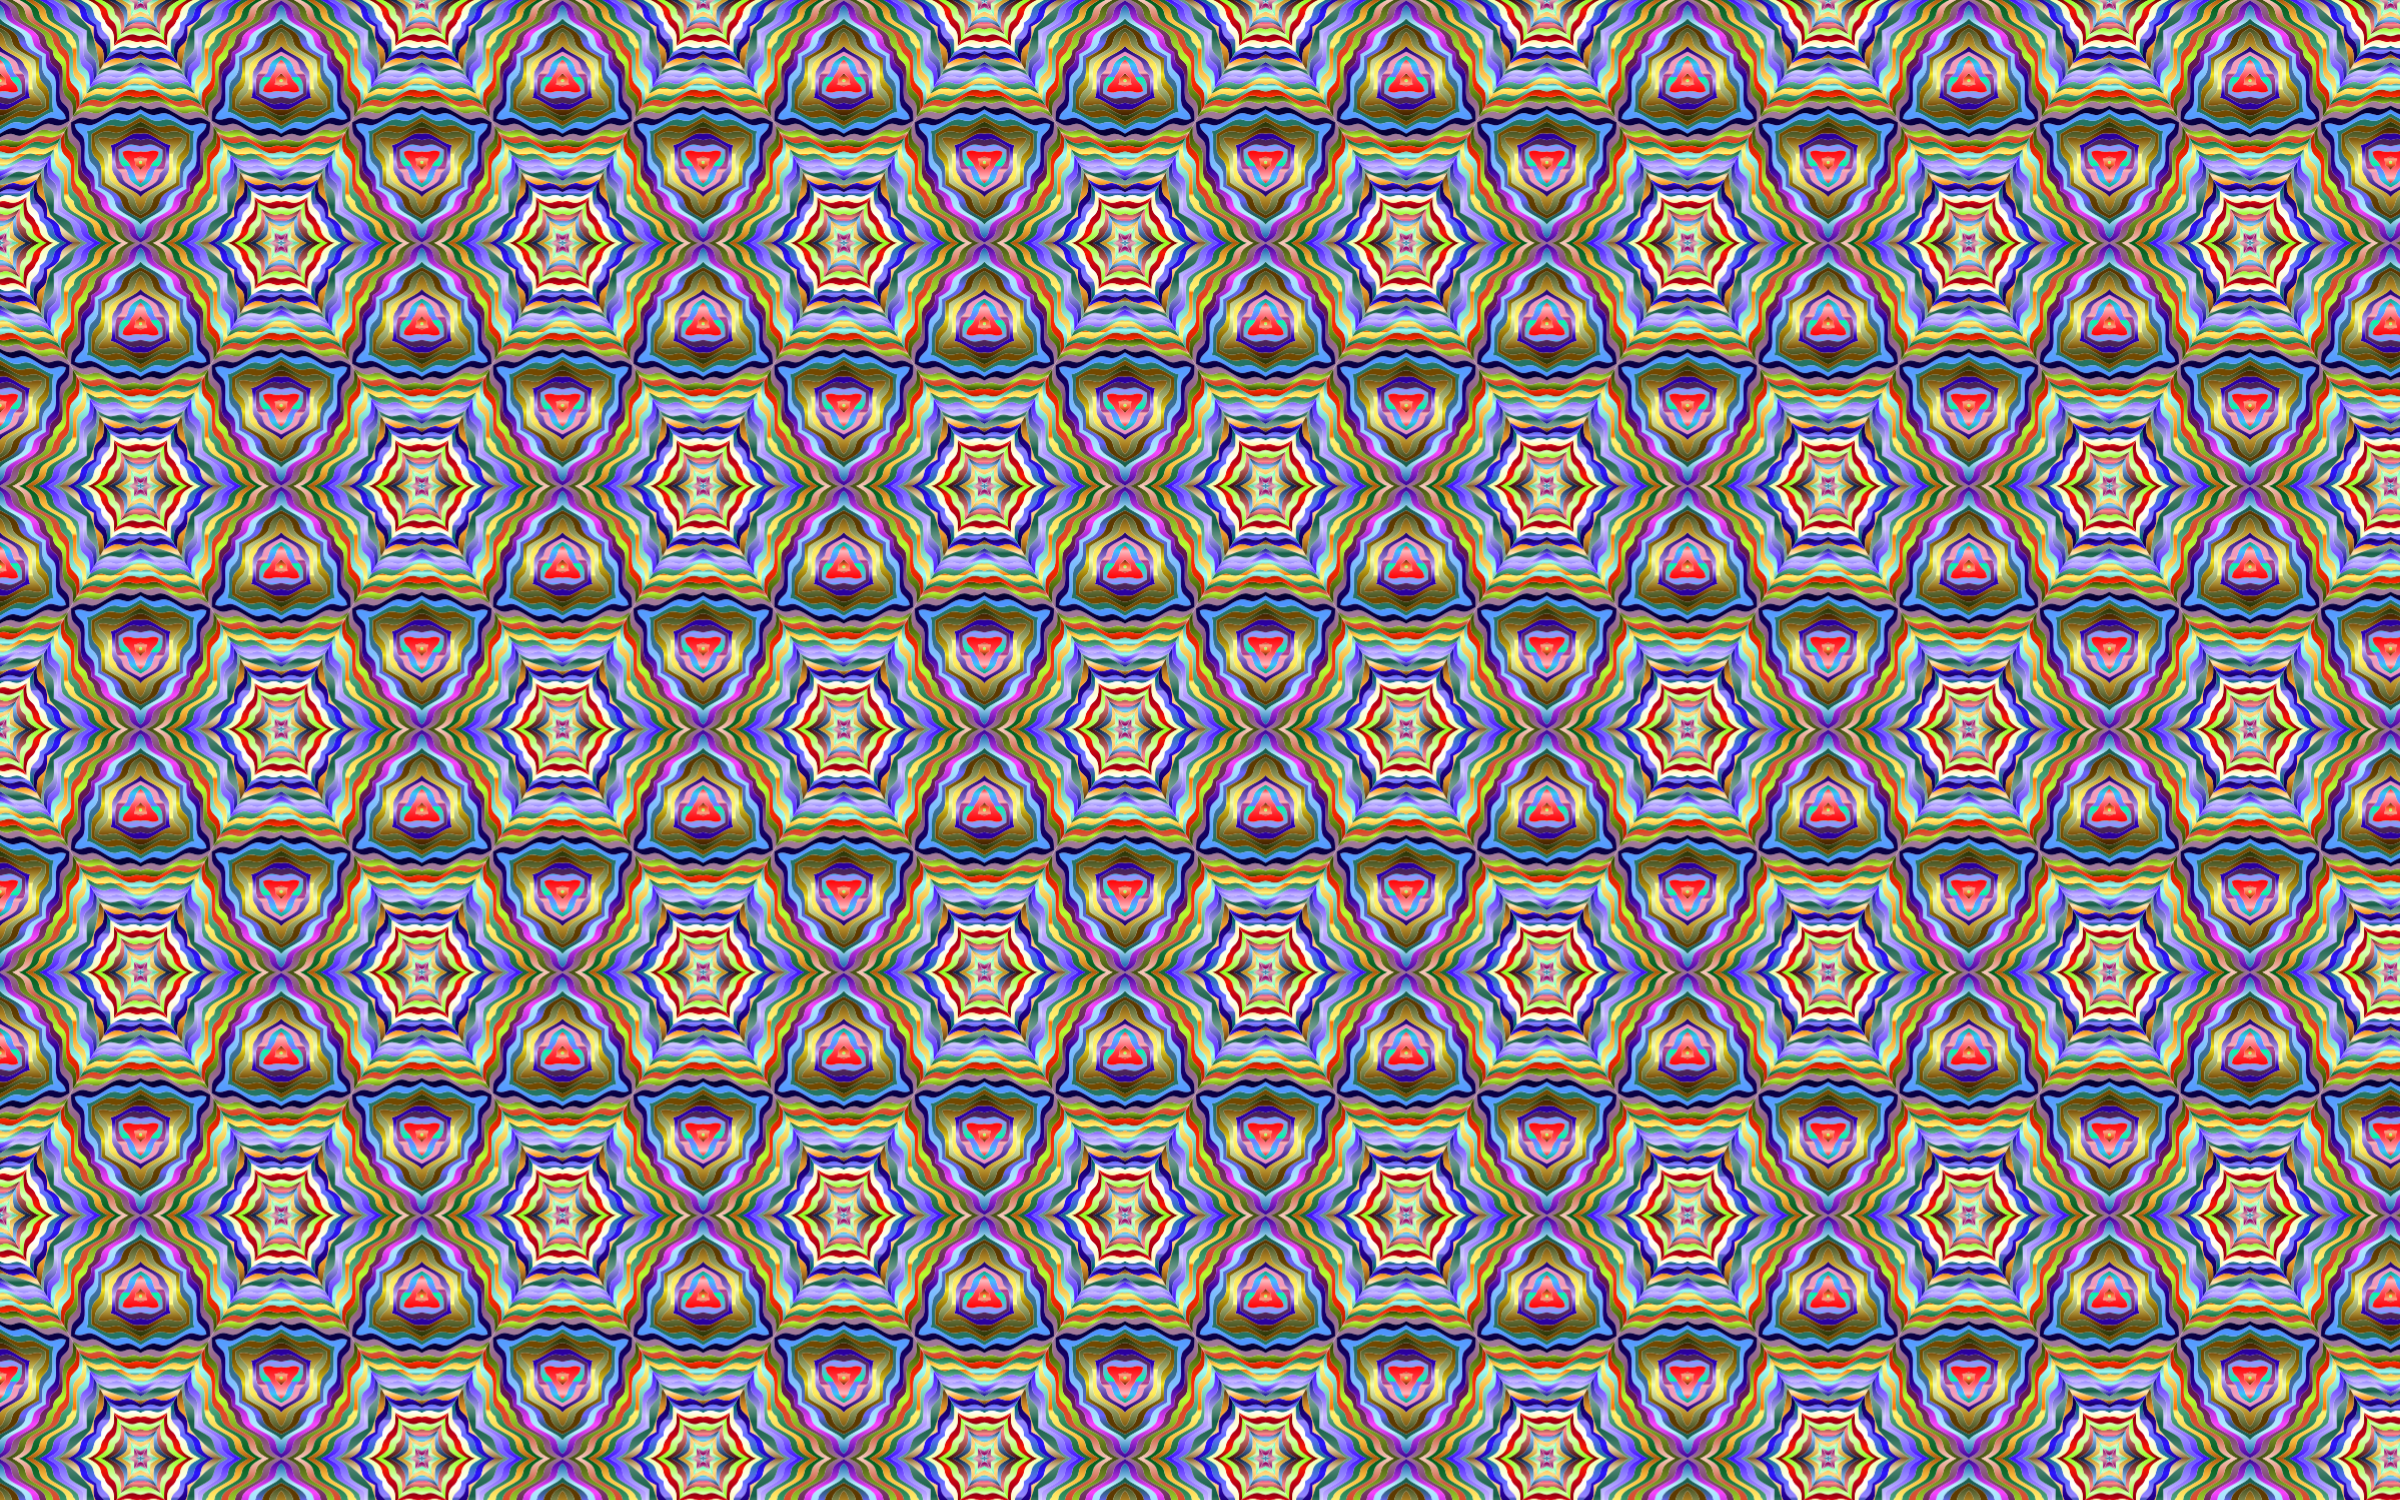 Seamless Psychedelic Geometric Pattern by GDJ